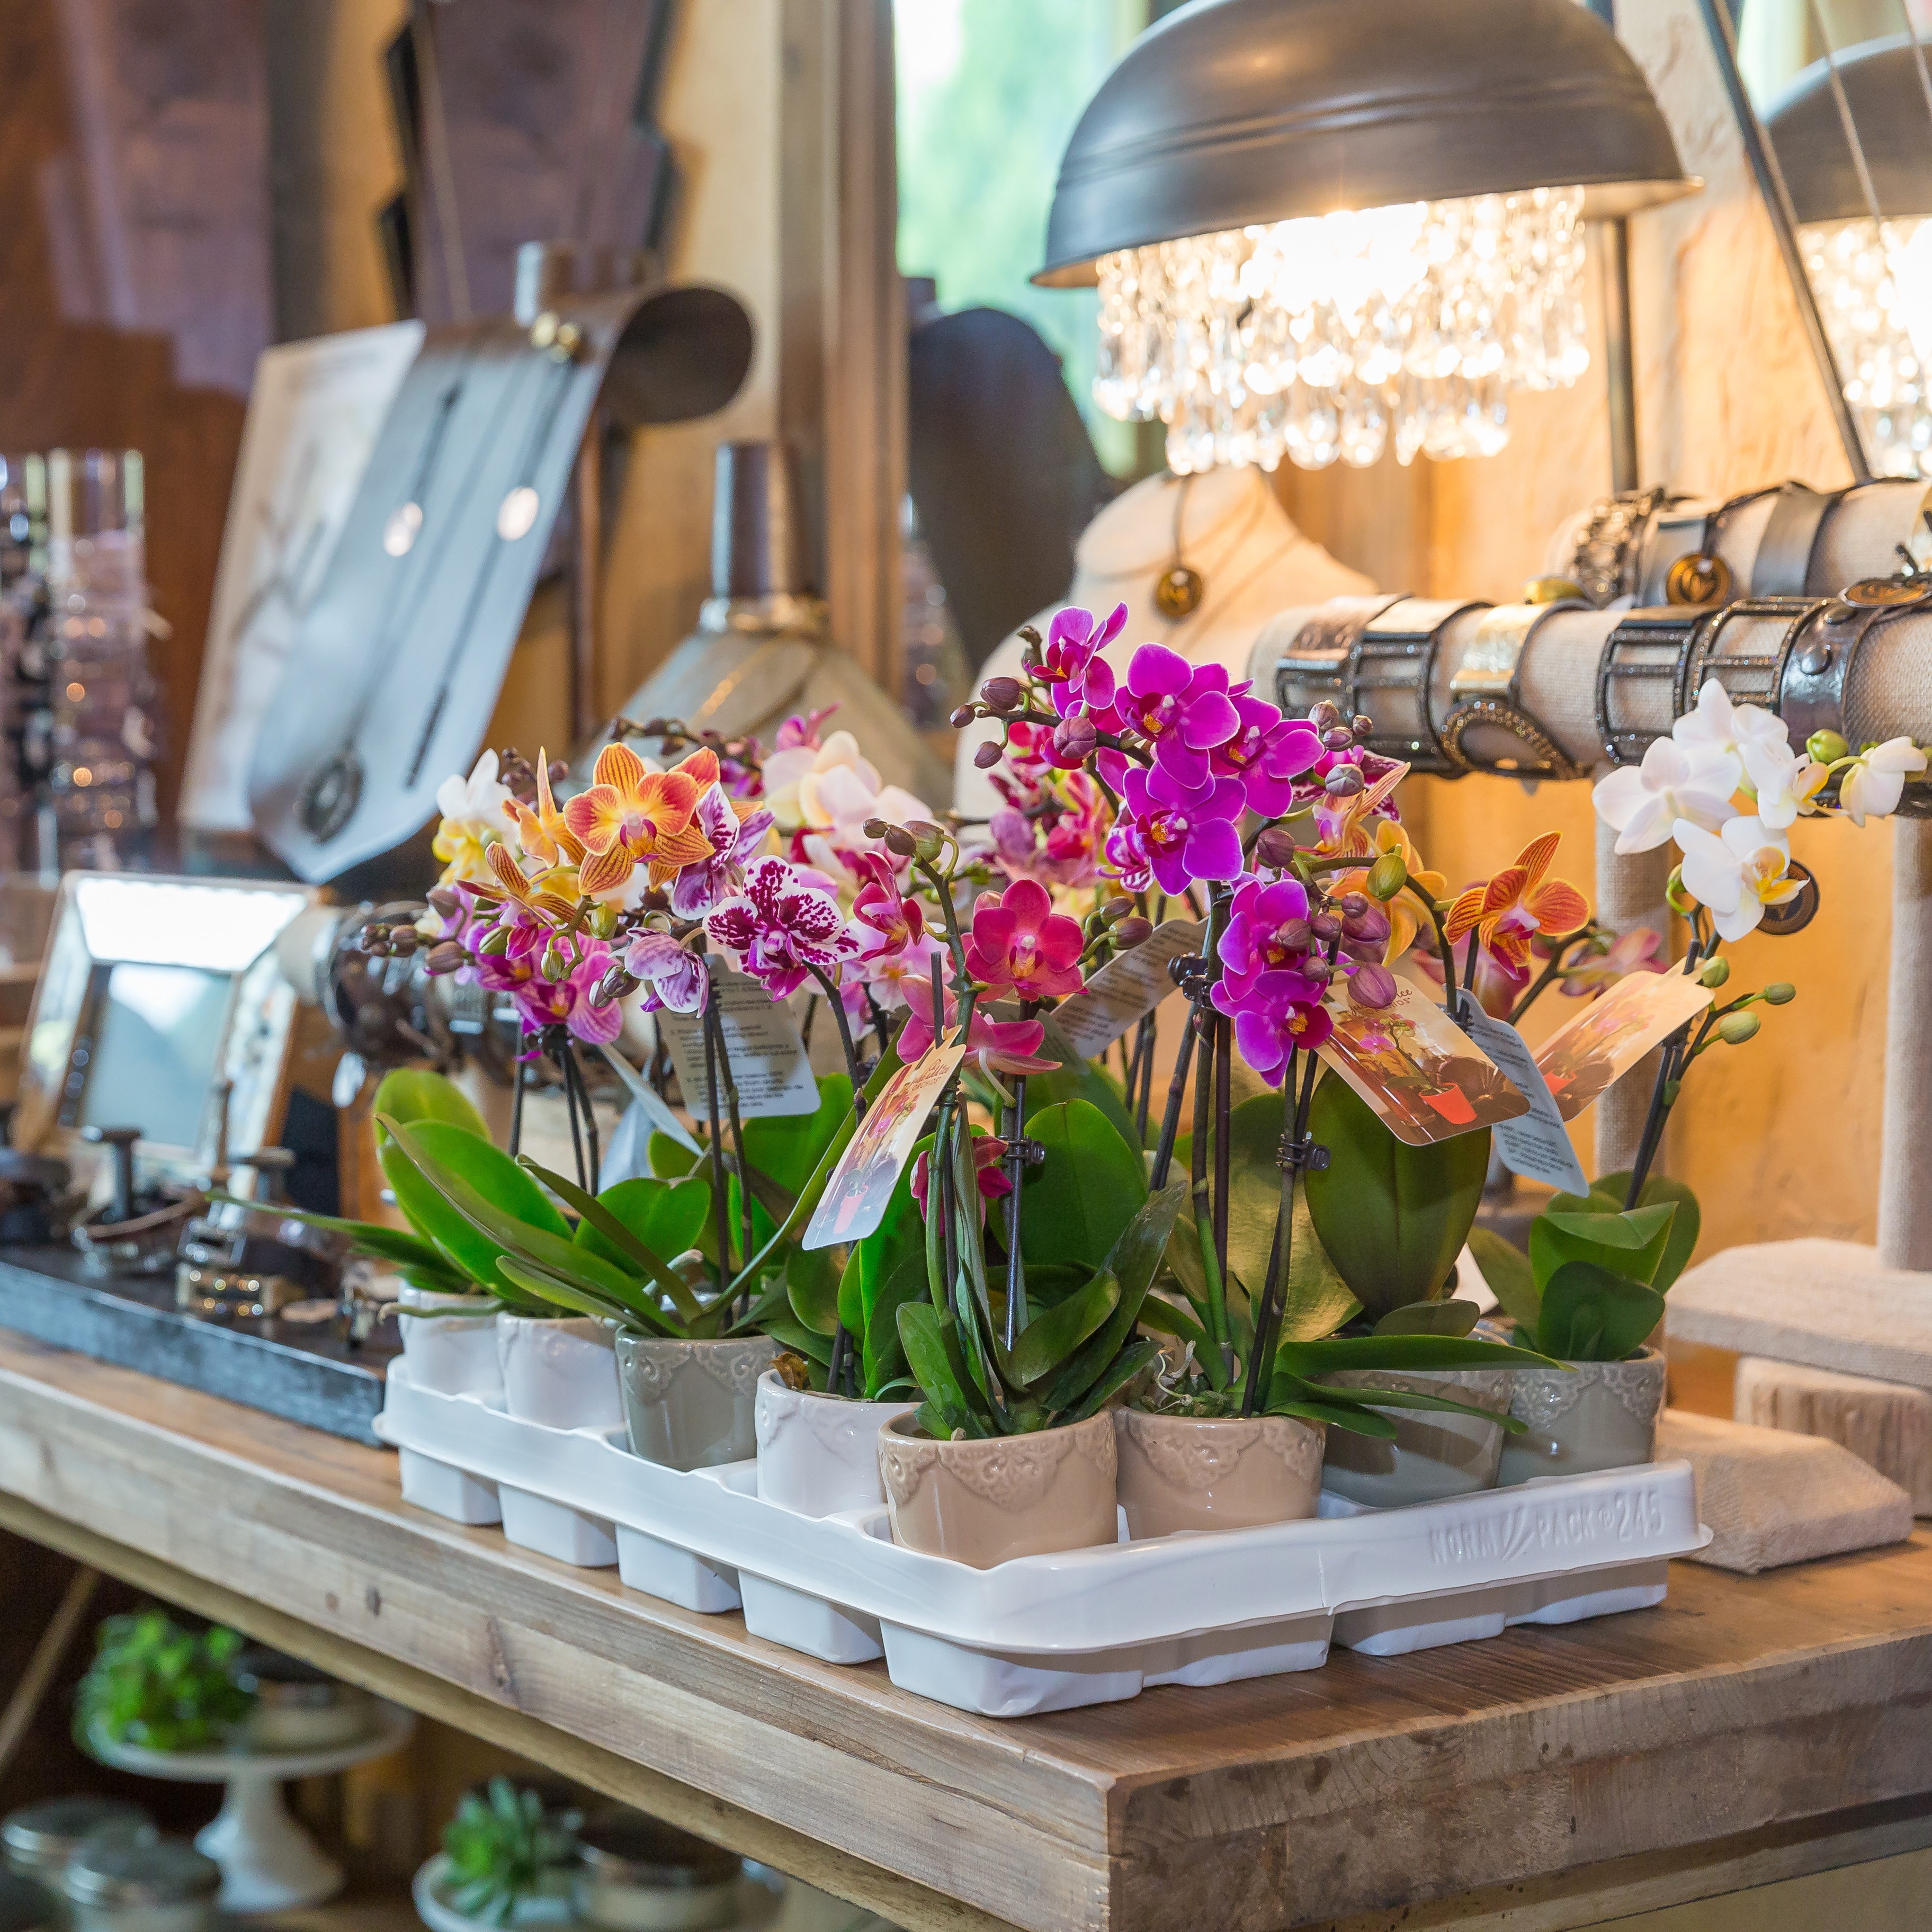 Choosing the Right Wholesale Floral Supplier